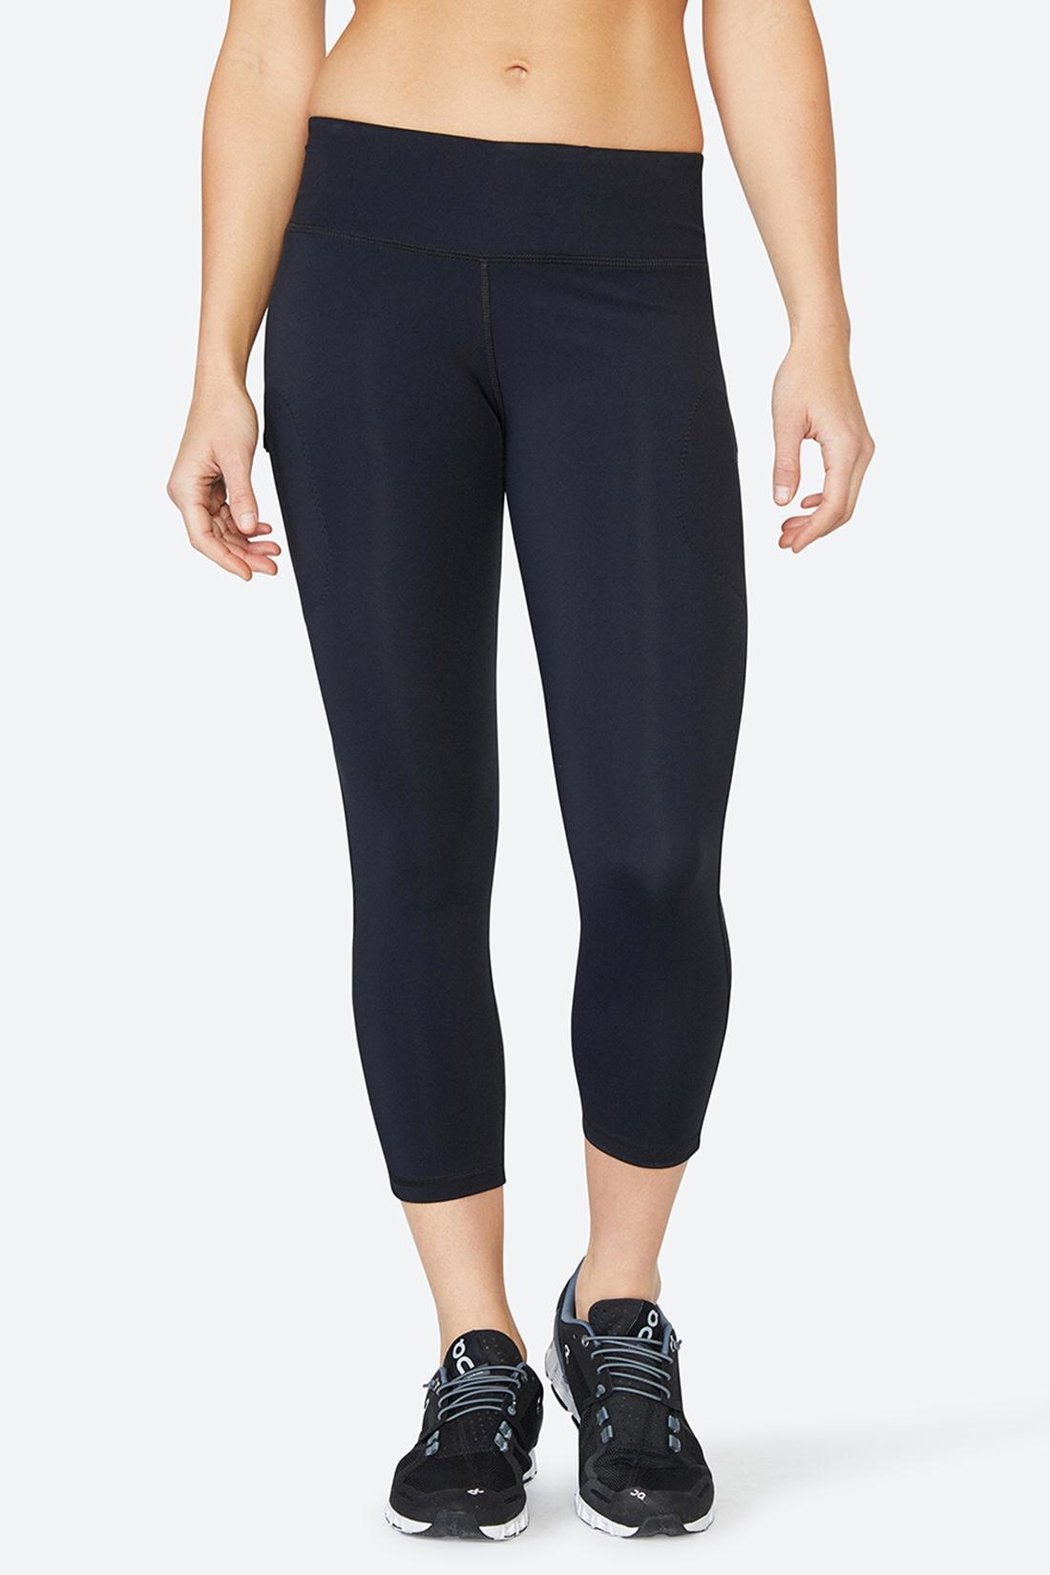 Solfire Chelsea Mesh Tight Leggings - Side Cropped Image